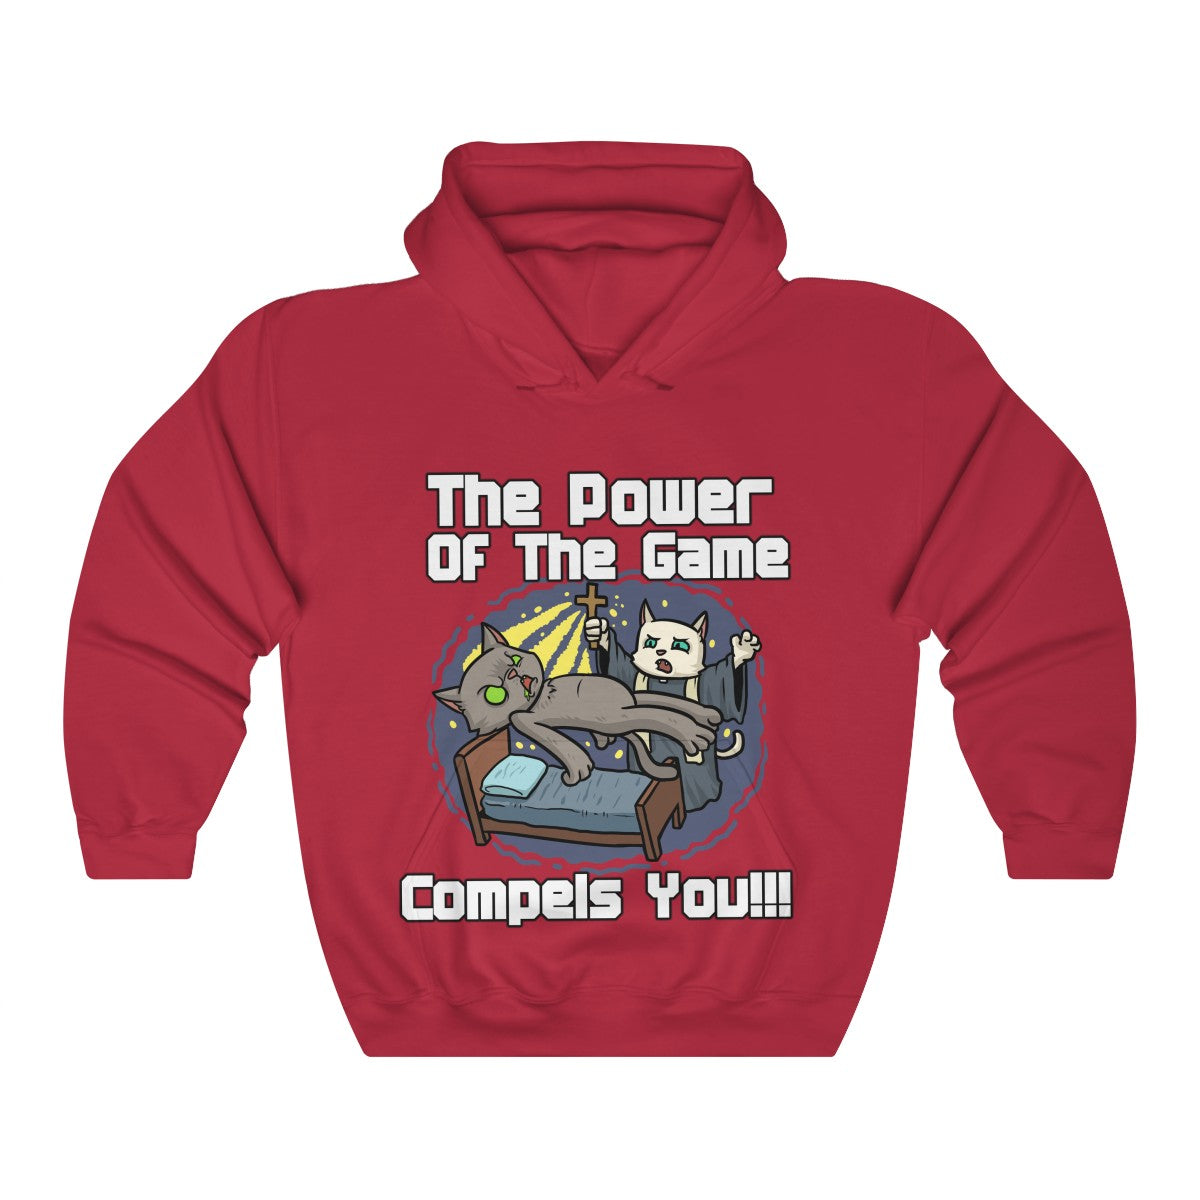 The Power Of The Game Compels You Hooded Sweatshirt